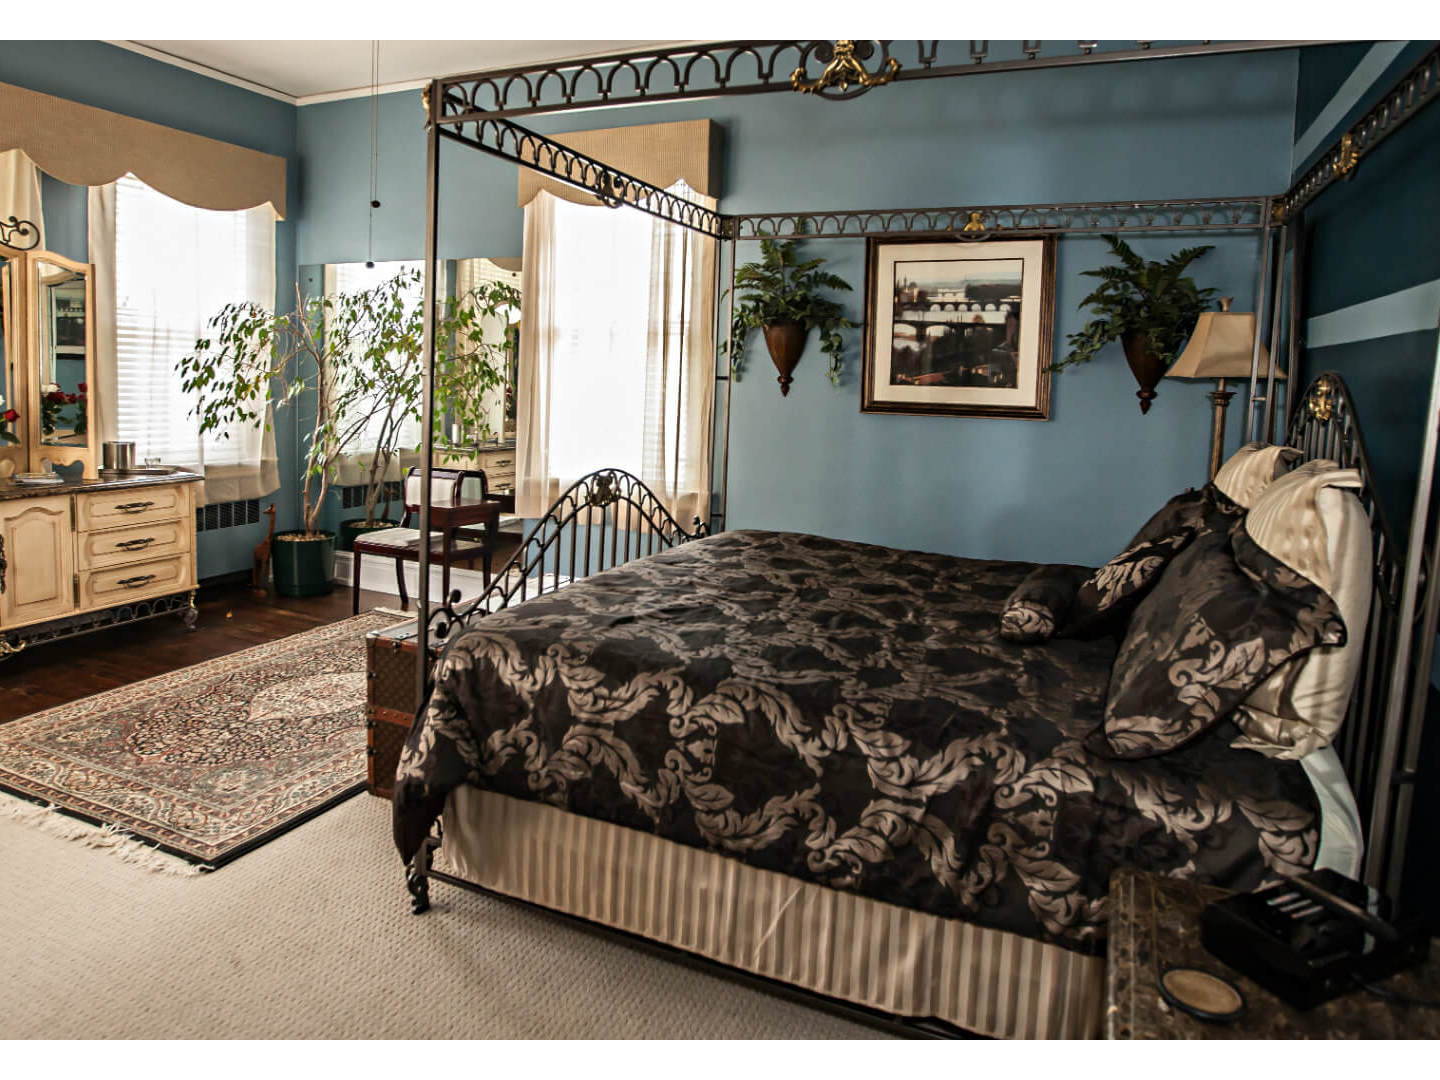 A bedroom with a large bed in a room at Morehead Manor Bed and Breakfast.